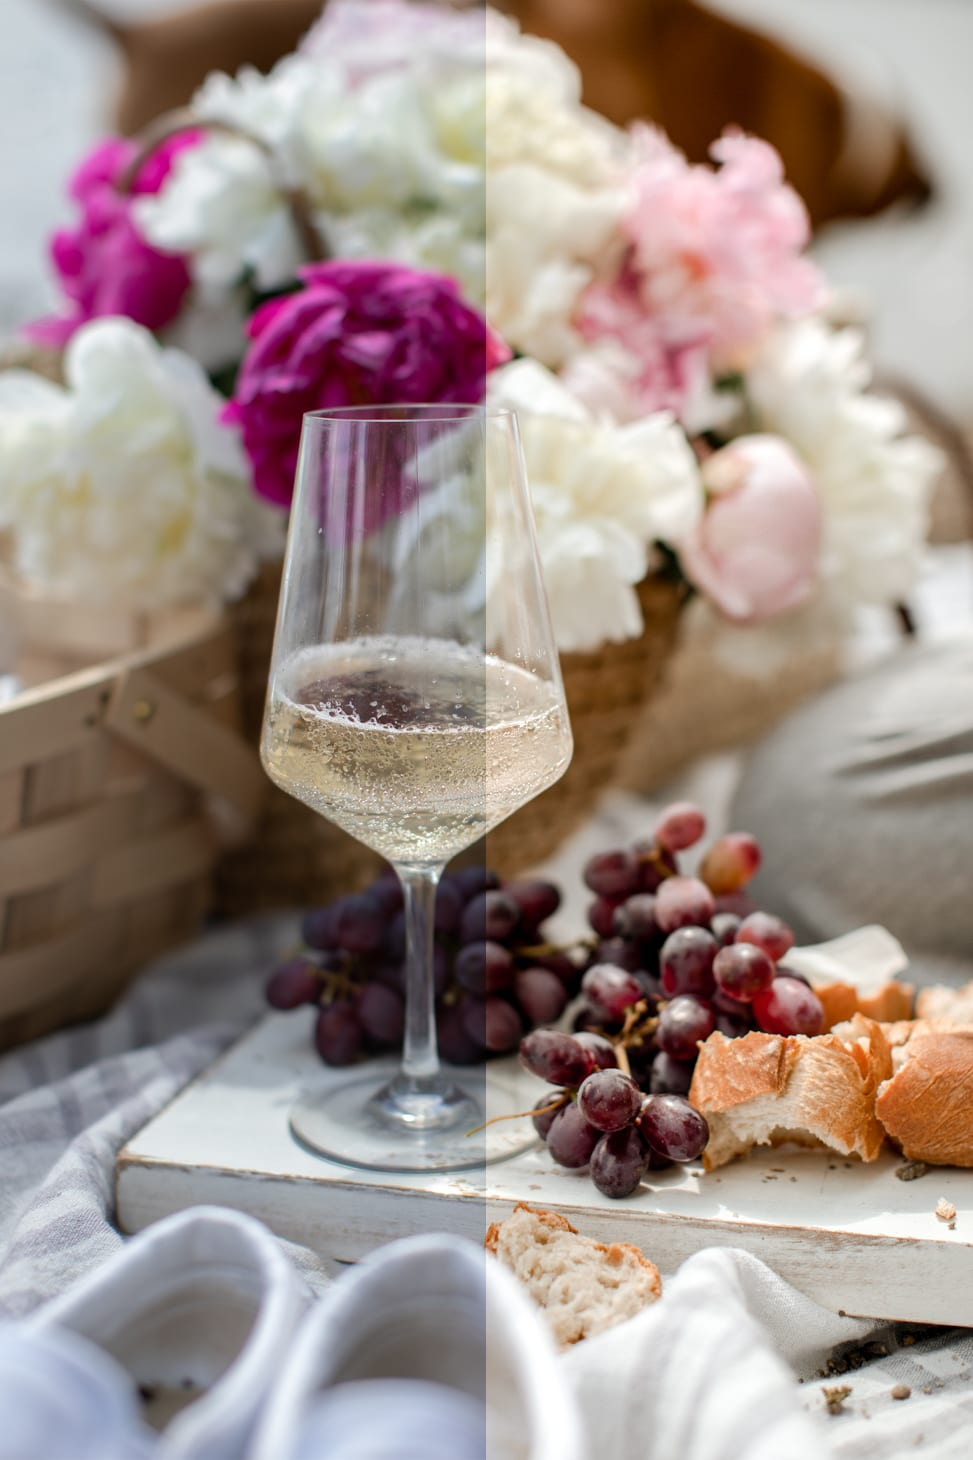 Jillian Harris is now offering Stock Photo Imagery through The Jilly Academy Campus Store such as this  image of a charcuterie board with a cold glass of white wine and a picnic basket filled with florals.